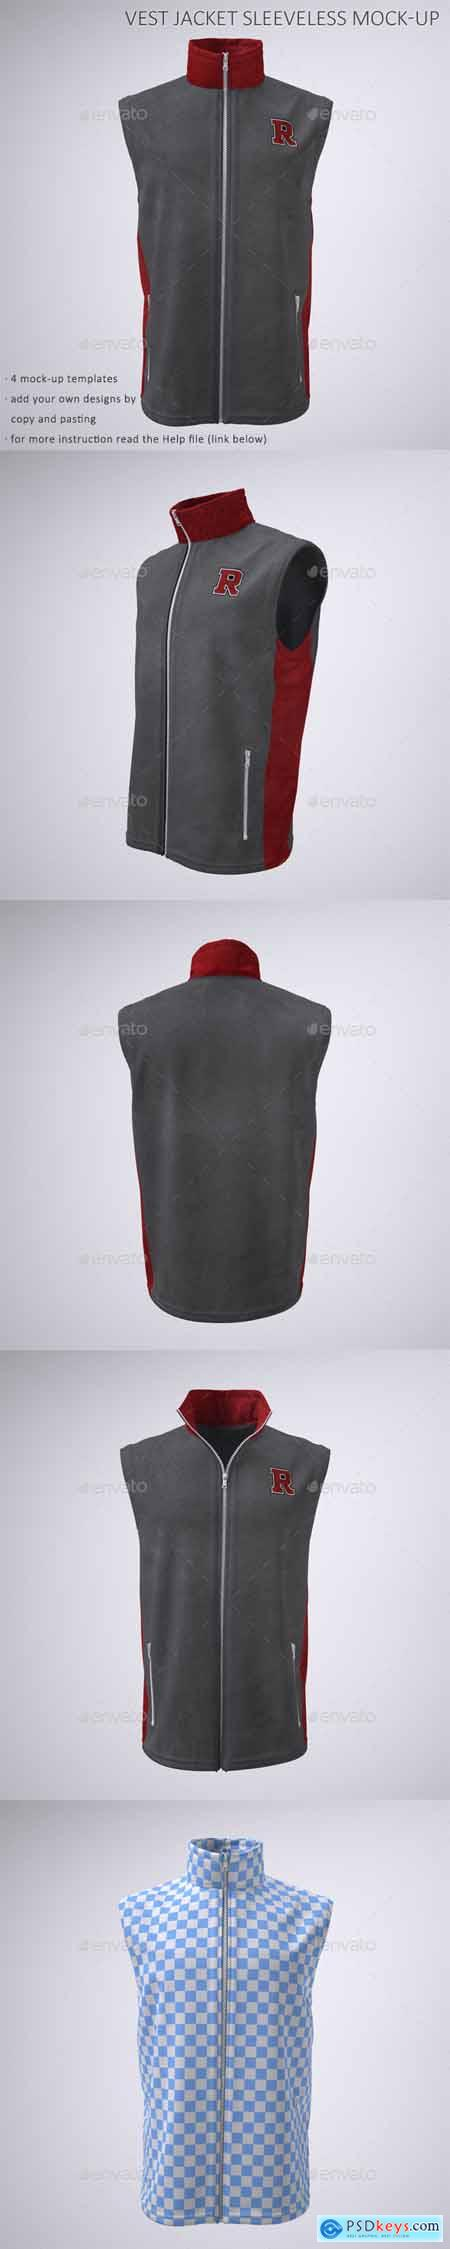 Vest or Sleeveless Jacket Mock-Up 22766697